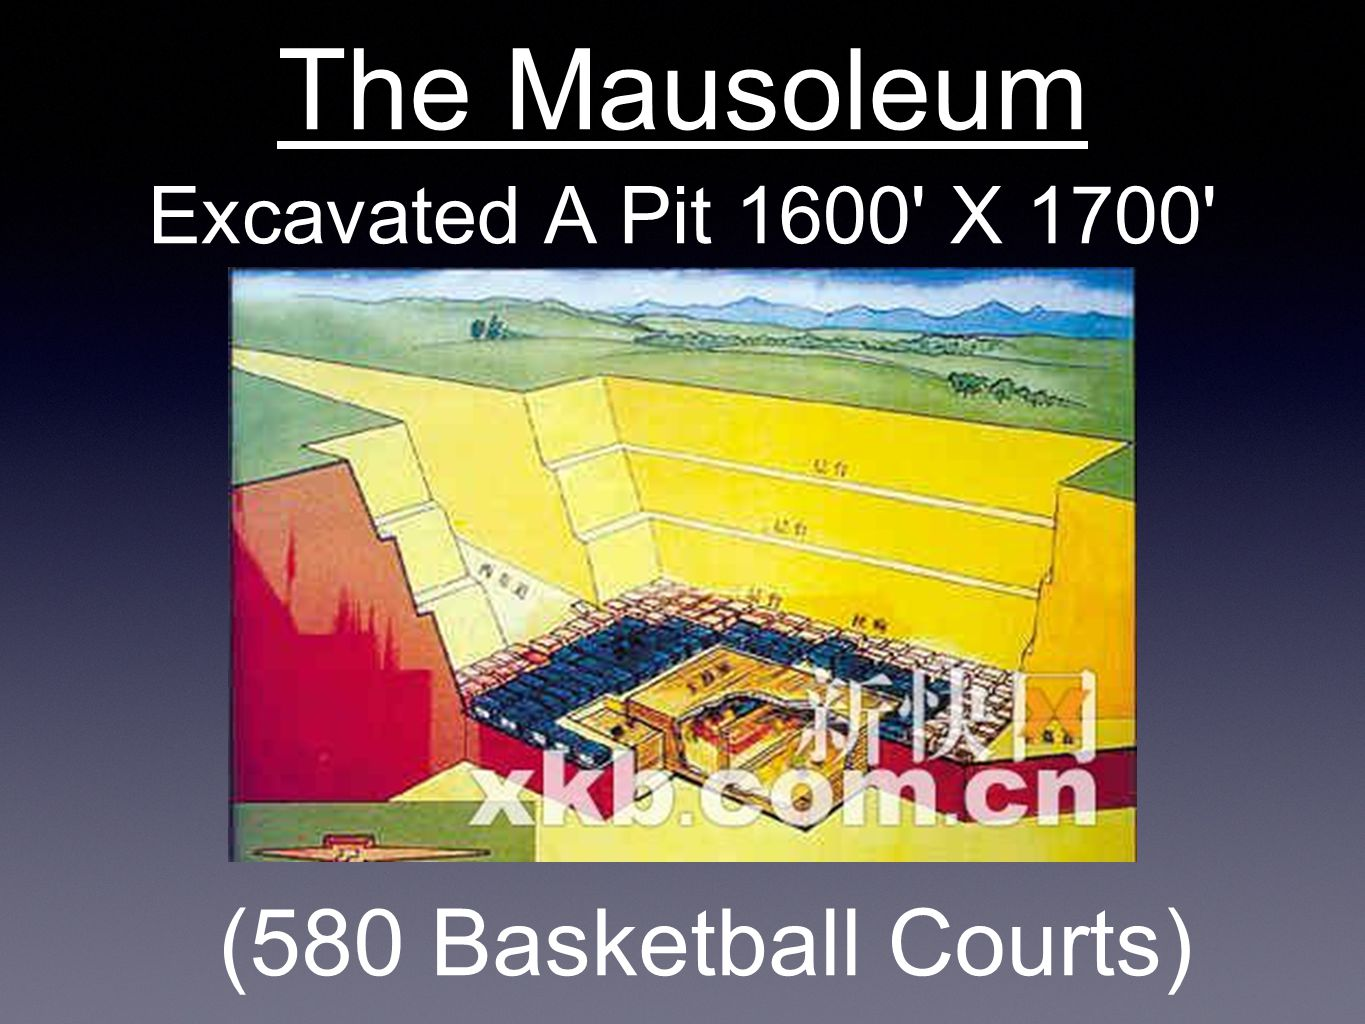 Excavated A Pit 1600' X 1700' The Mausoleum (580 Basketball Courts)